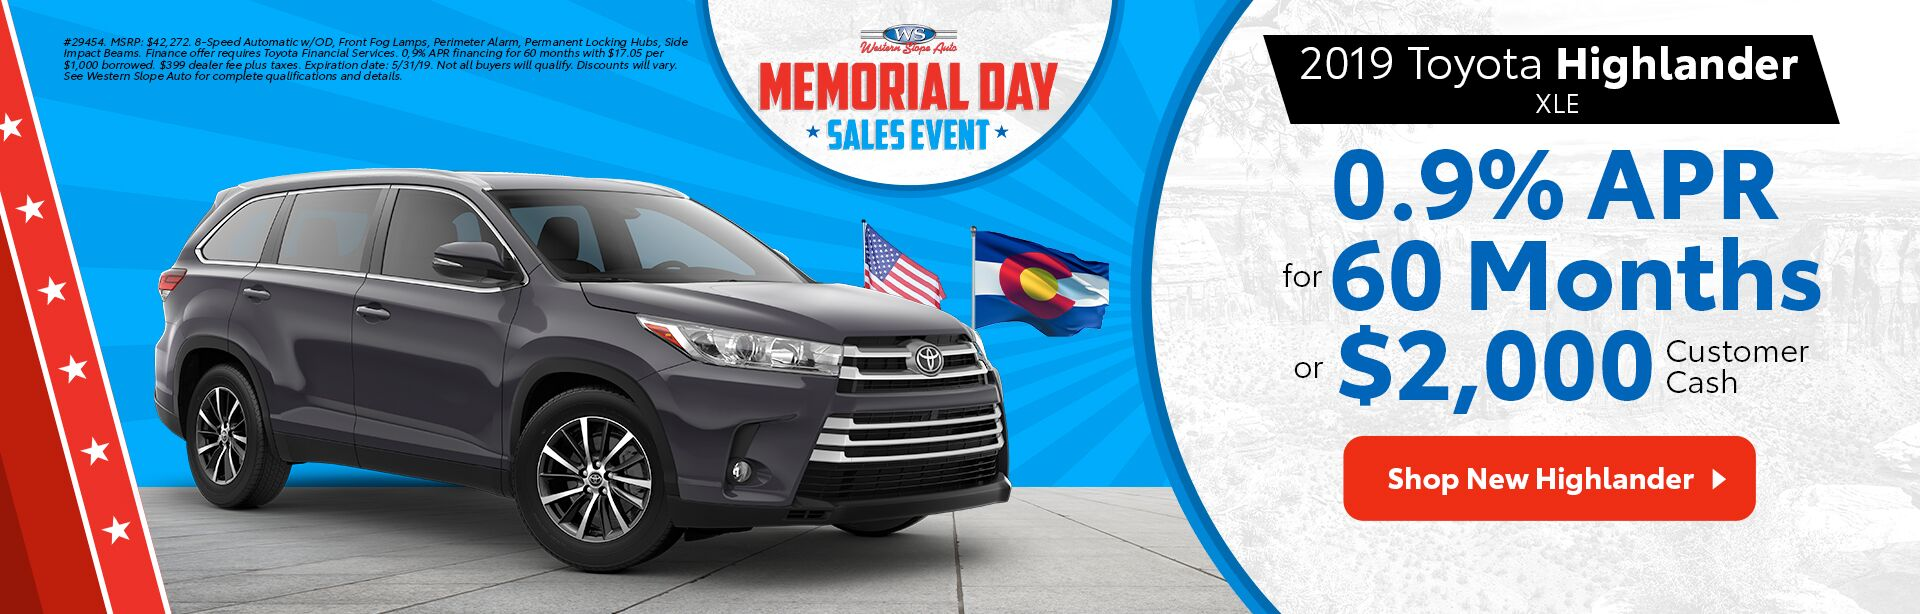 2019 Highlander / Memorial Day Sales Event